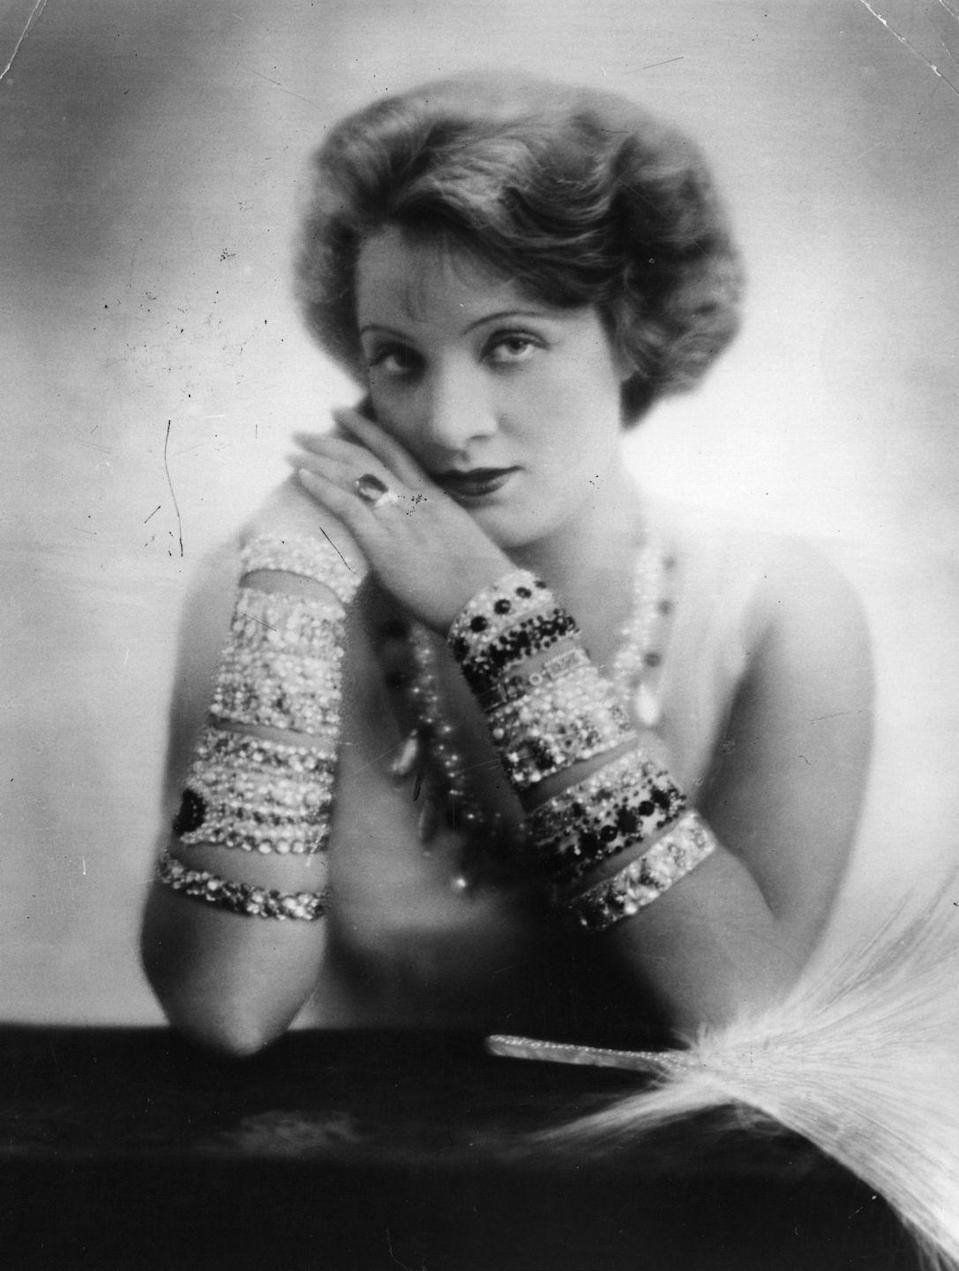 <p>Dietrich sits for a portrait and proves maximalism - thanks to her stacks of jeweled bangles and bracelets - is still alive and strong. <br></p>